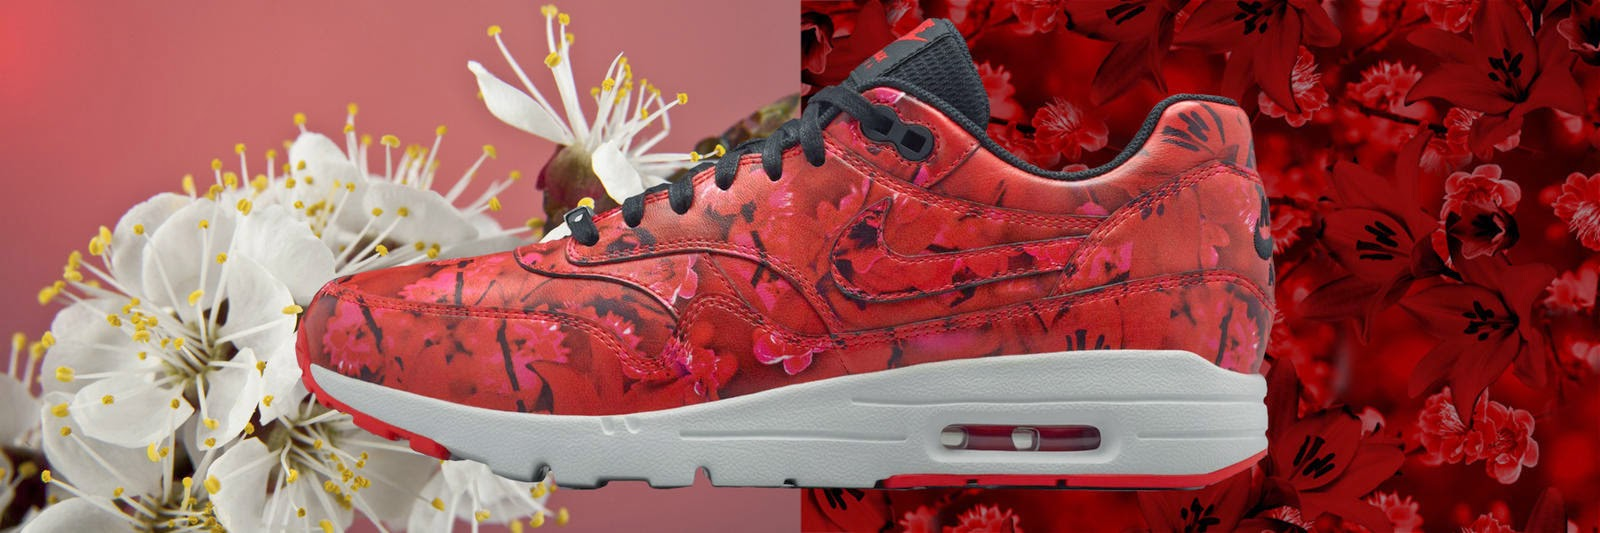 51488c1f87 Sportmondo sports portal: Bouquet of Max: The Nike Air Max 1 Ultra ...